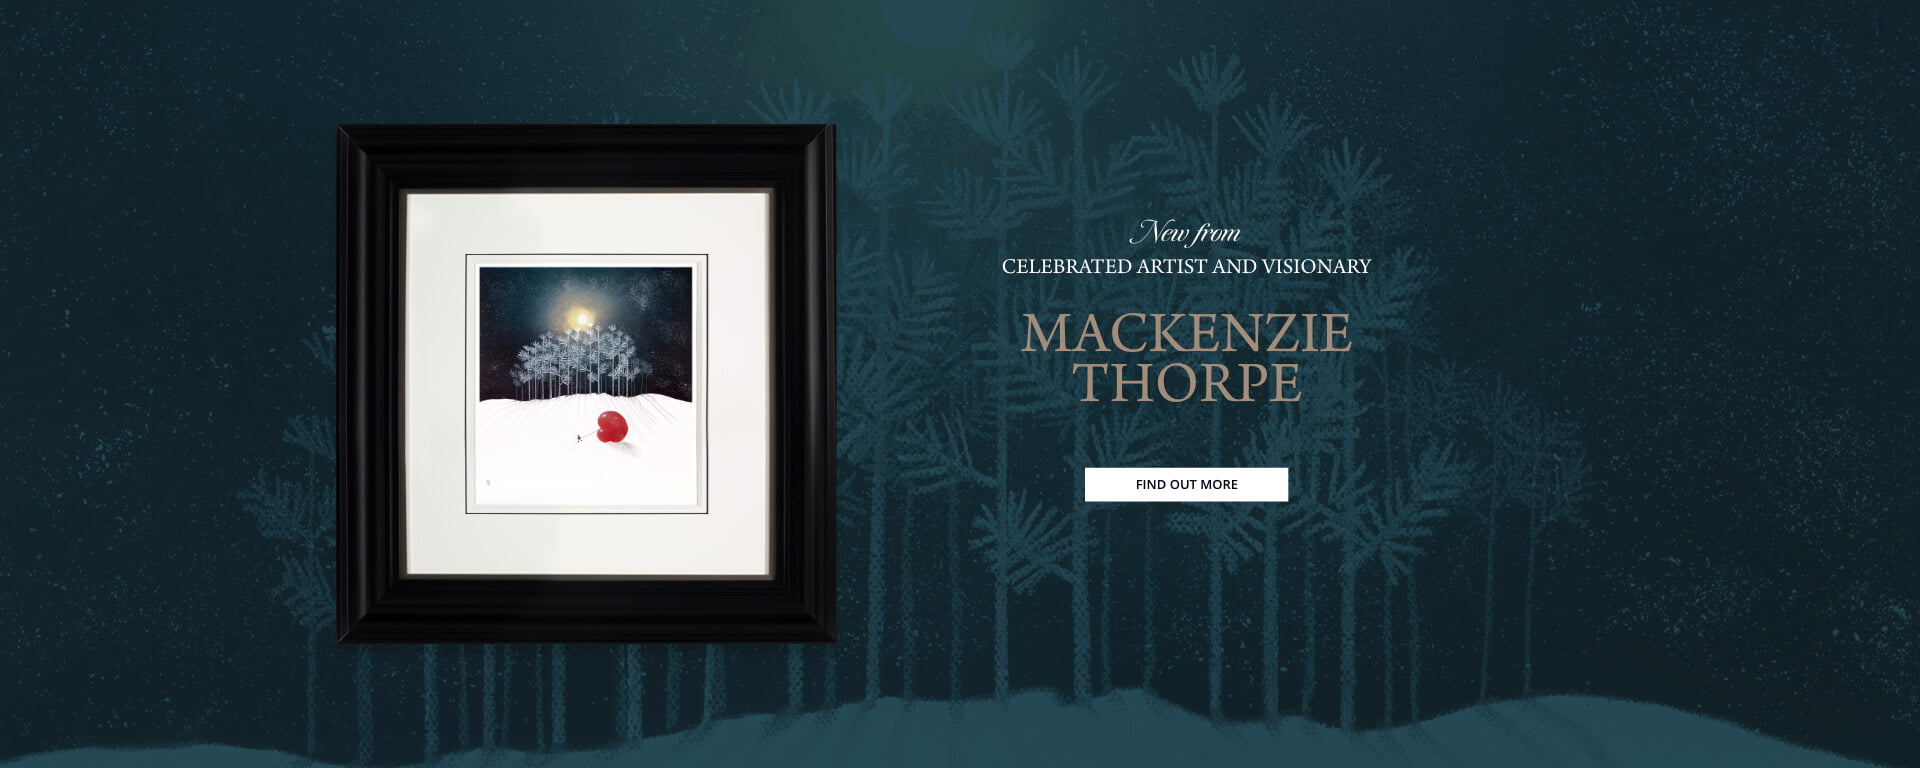 Introducing the new and exciting collection from Mackenzie Thorpe!